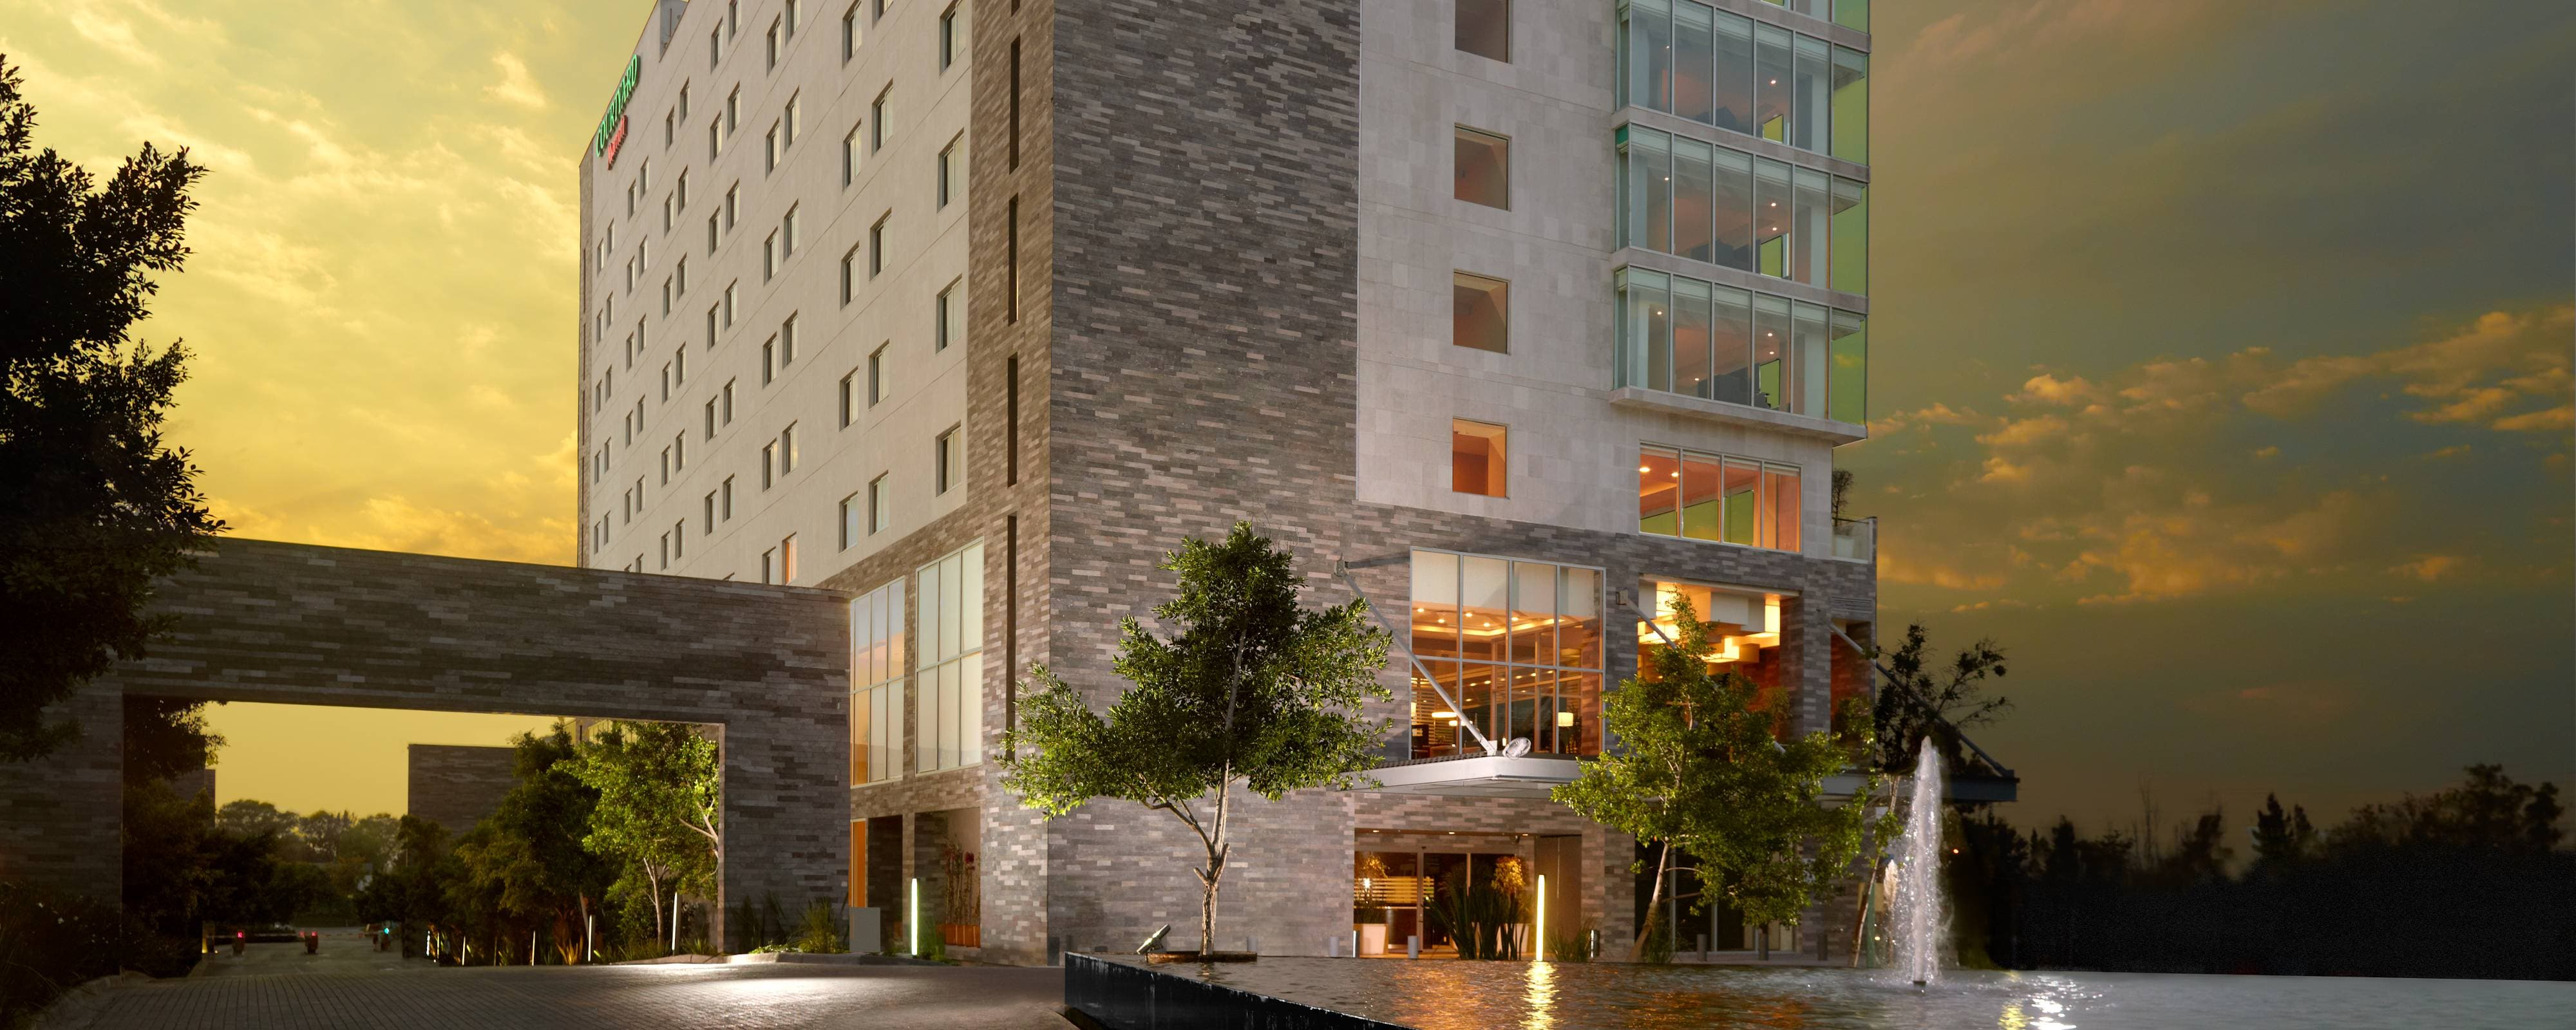 Hôtel Courtyard by Marriott à Querétaro